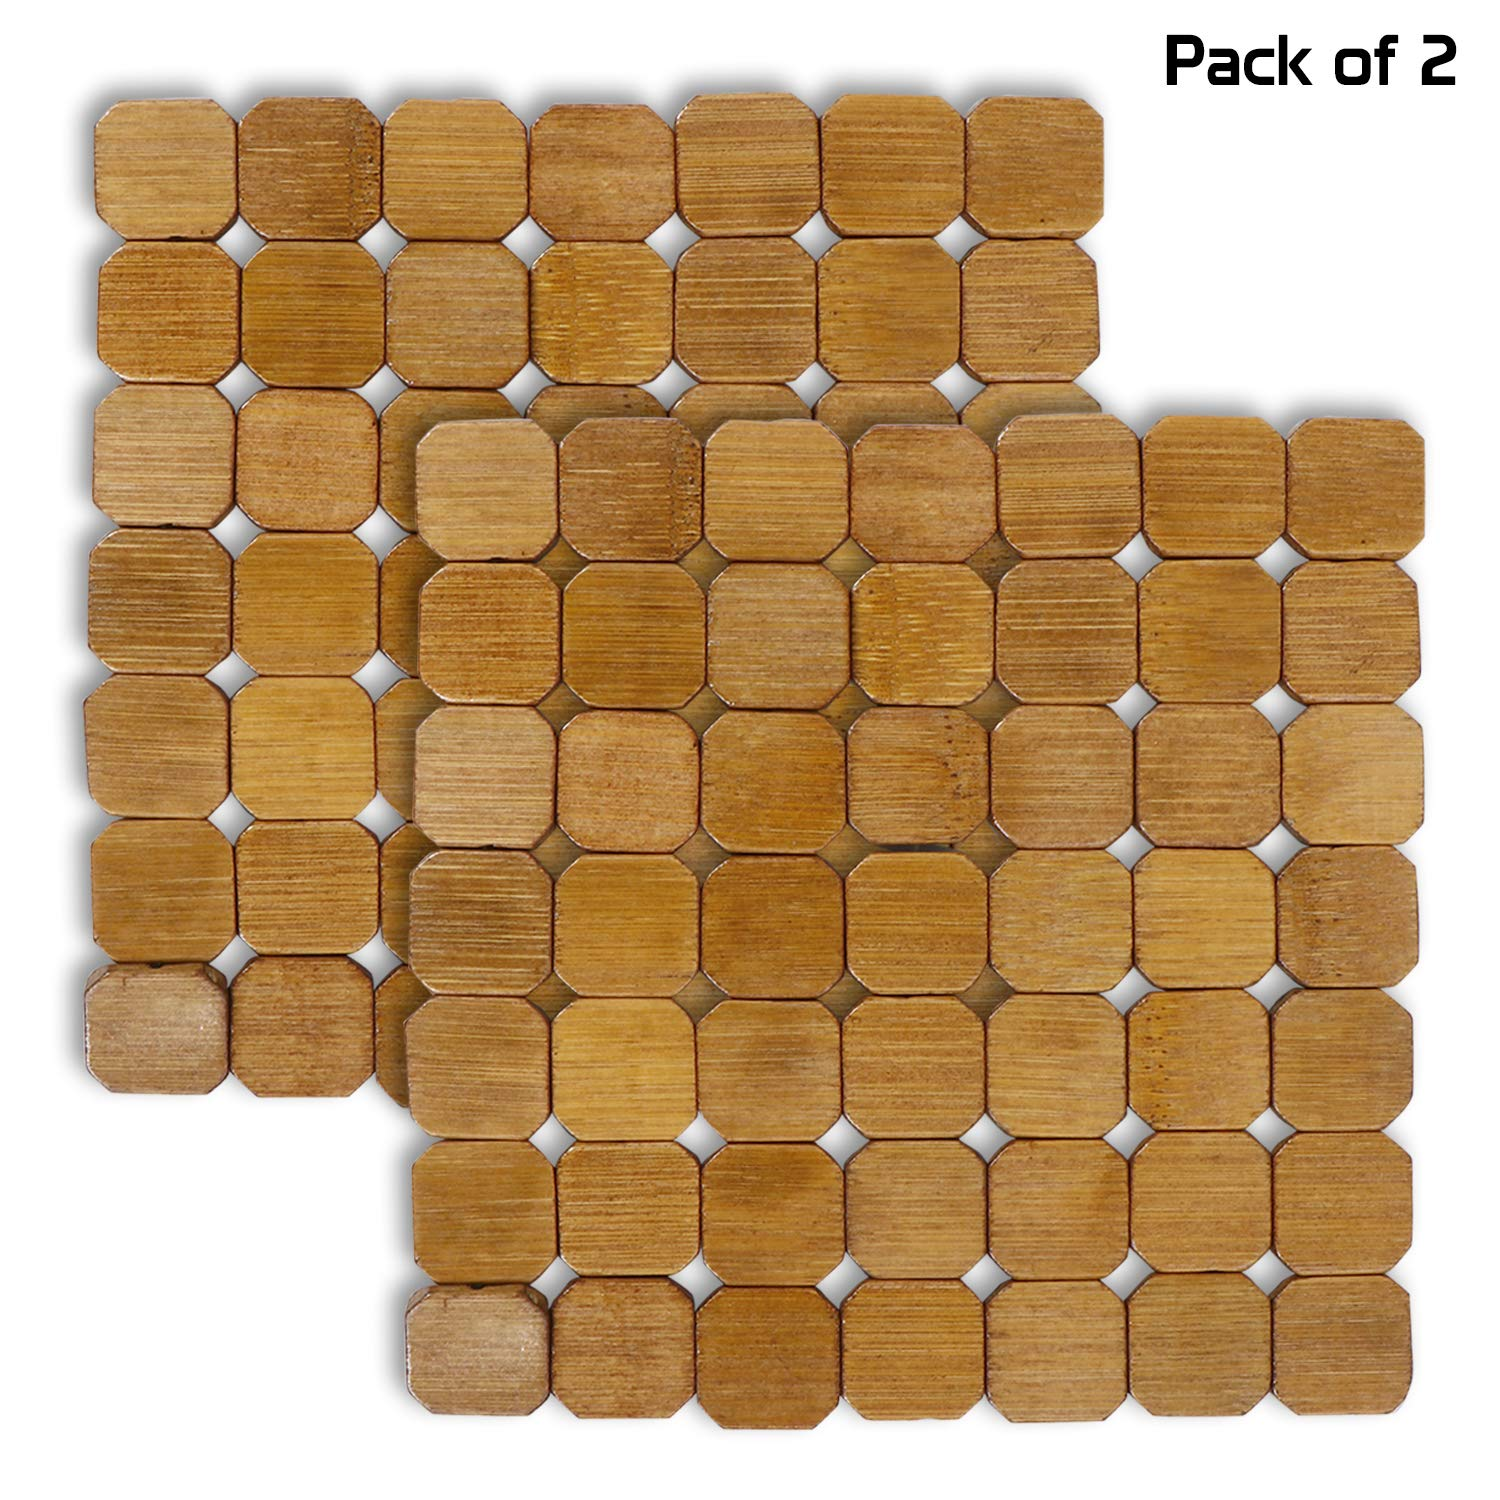 Blocks. AND009332. Size- 15 cm